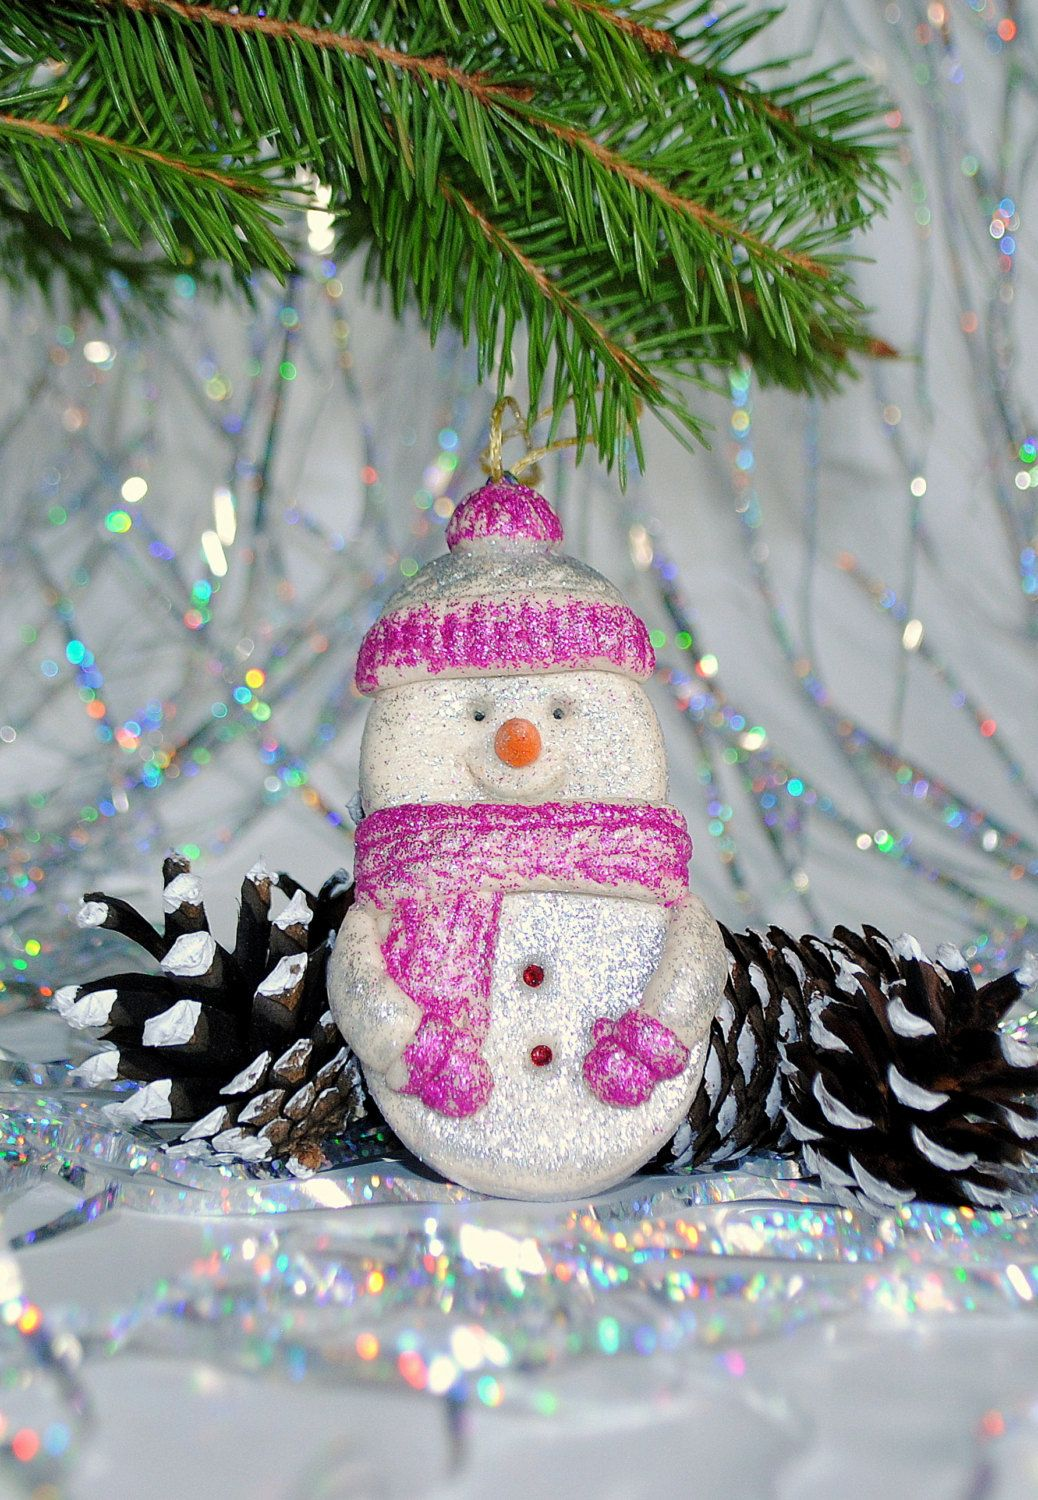 Snowman christmas ornament holiday decor winter snowmen xmas winter snowman christmas ornament holiday decor winter snowmen xmas winter wedding christmas decorations ecofriendly nature inspired hade junglespirit Images